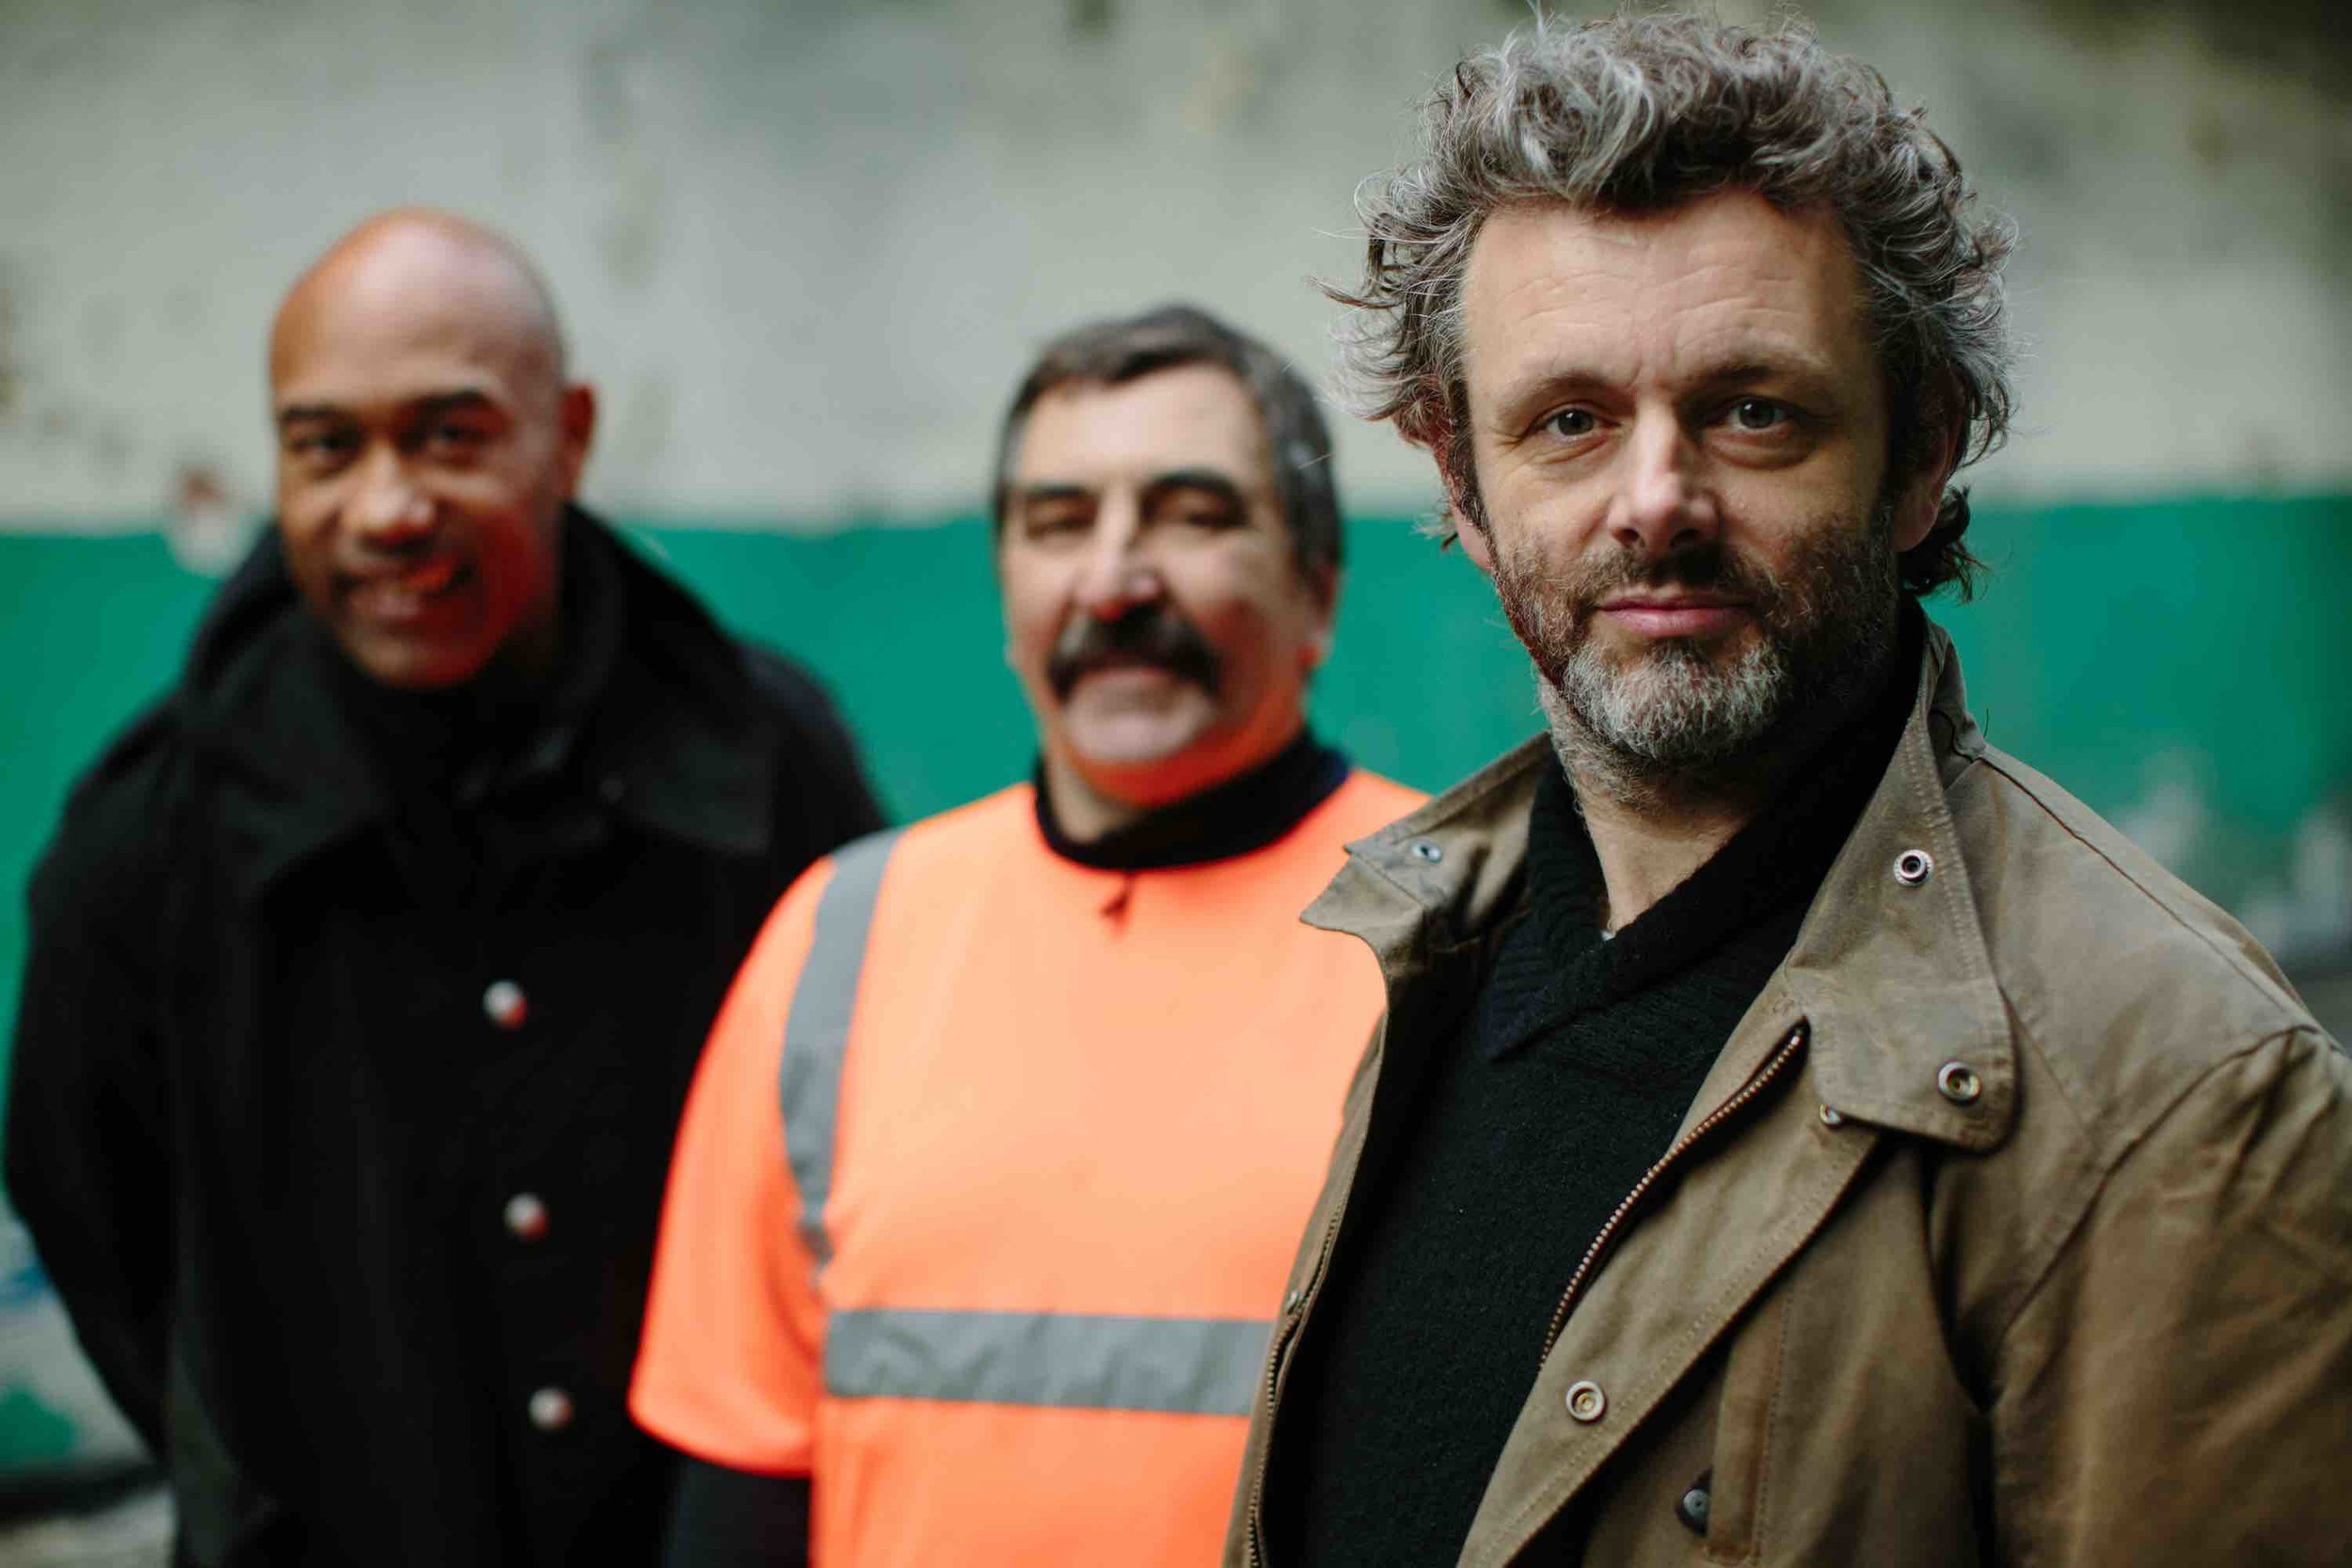 3. B48B7690-2 - Gus, Michael Sheen & Tony Schott from Tower Colliery mine 2.jpg